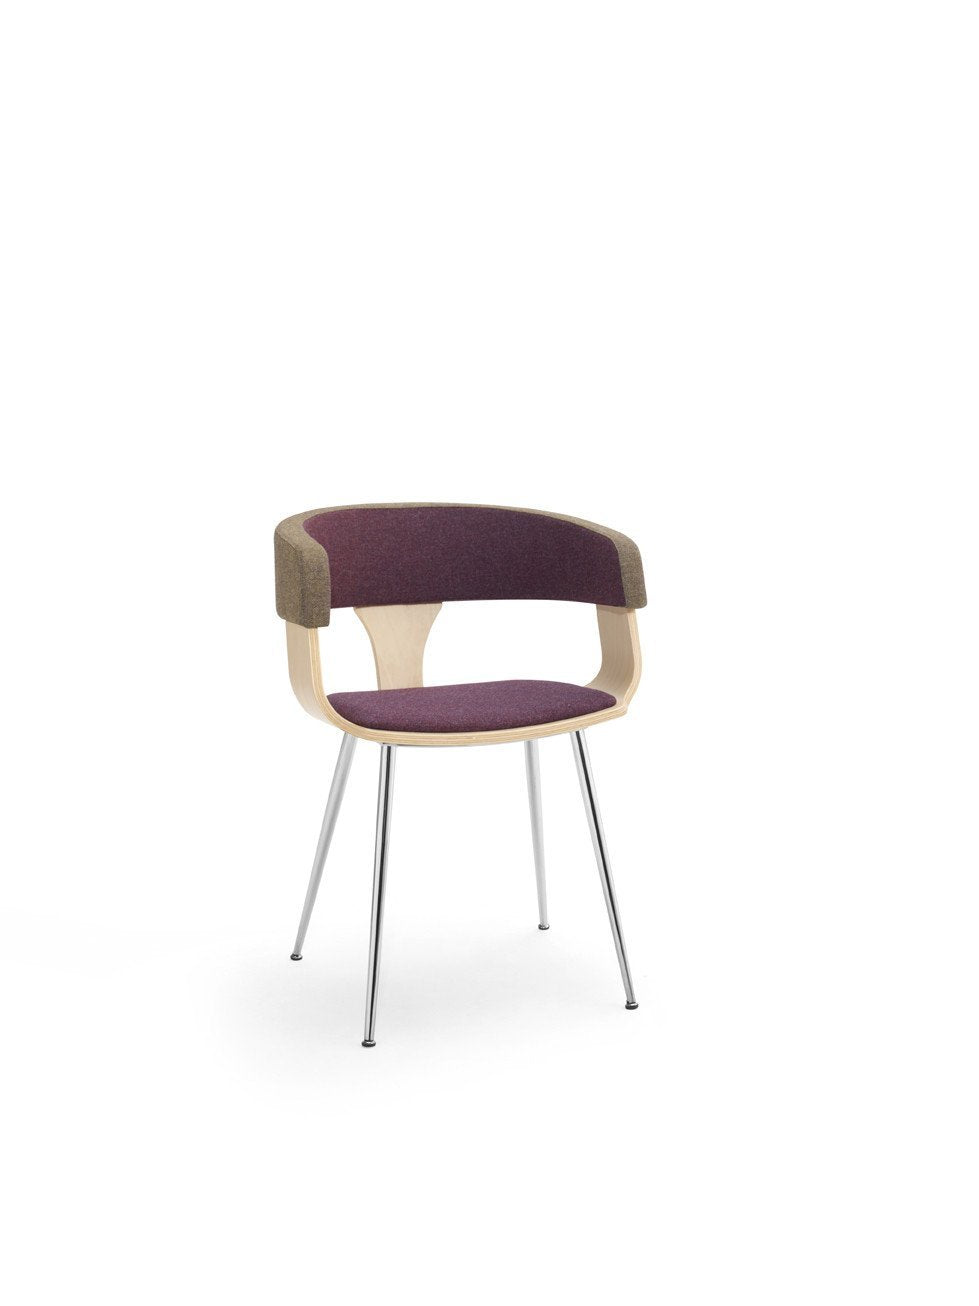 Mali Armchair c/w Metal Legs-Cignini-Contract Furniture Store